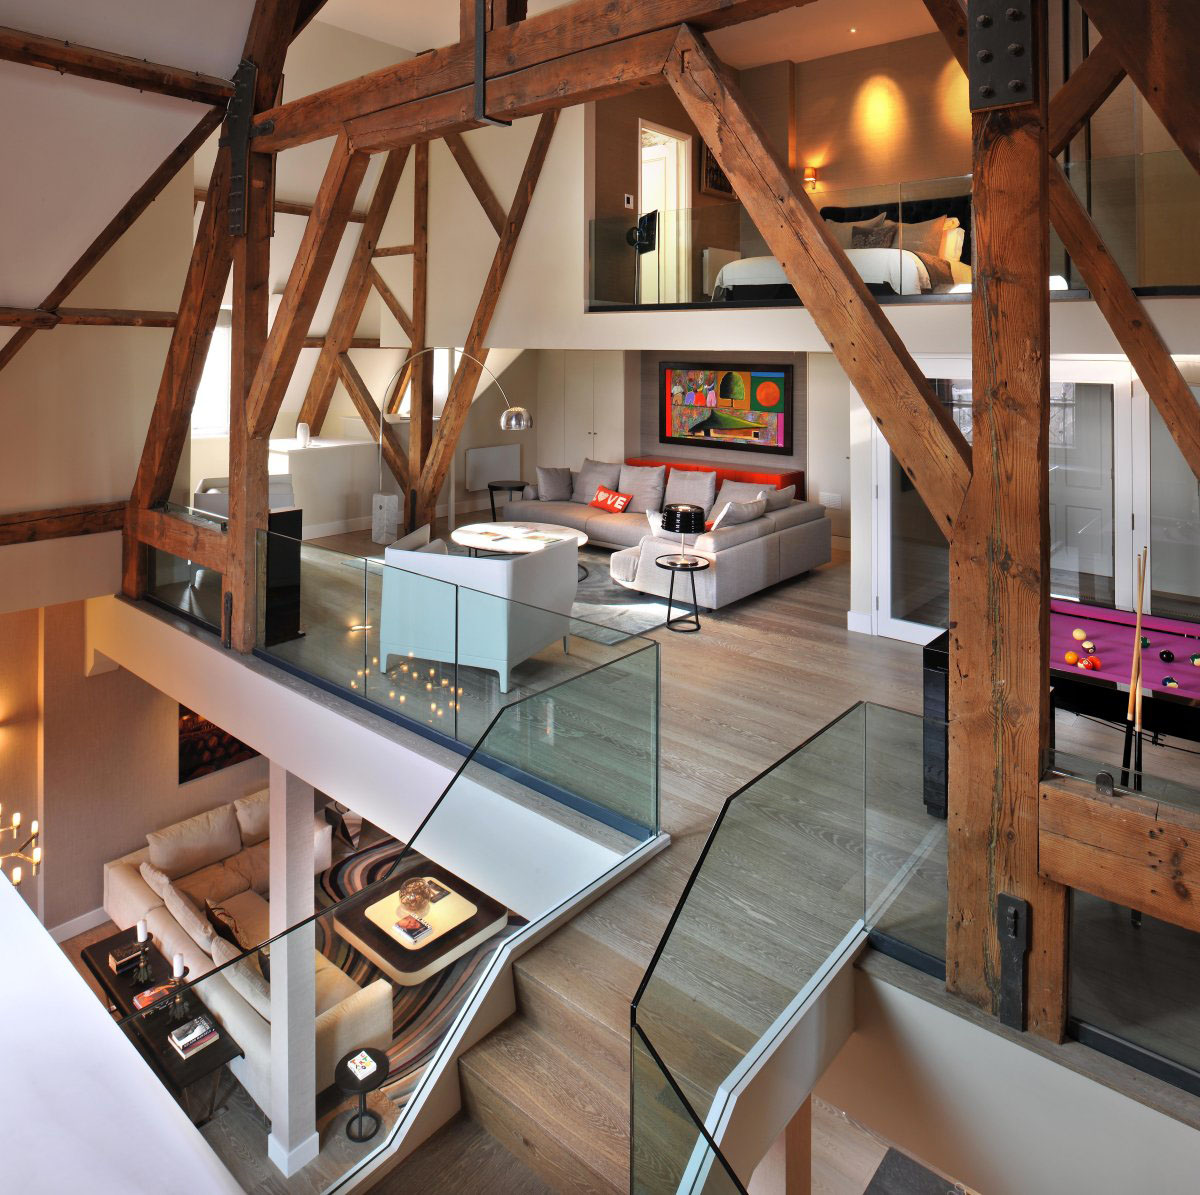 loft apartments in london ontario image collections norahbennett